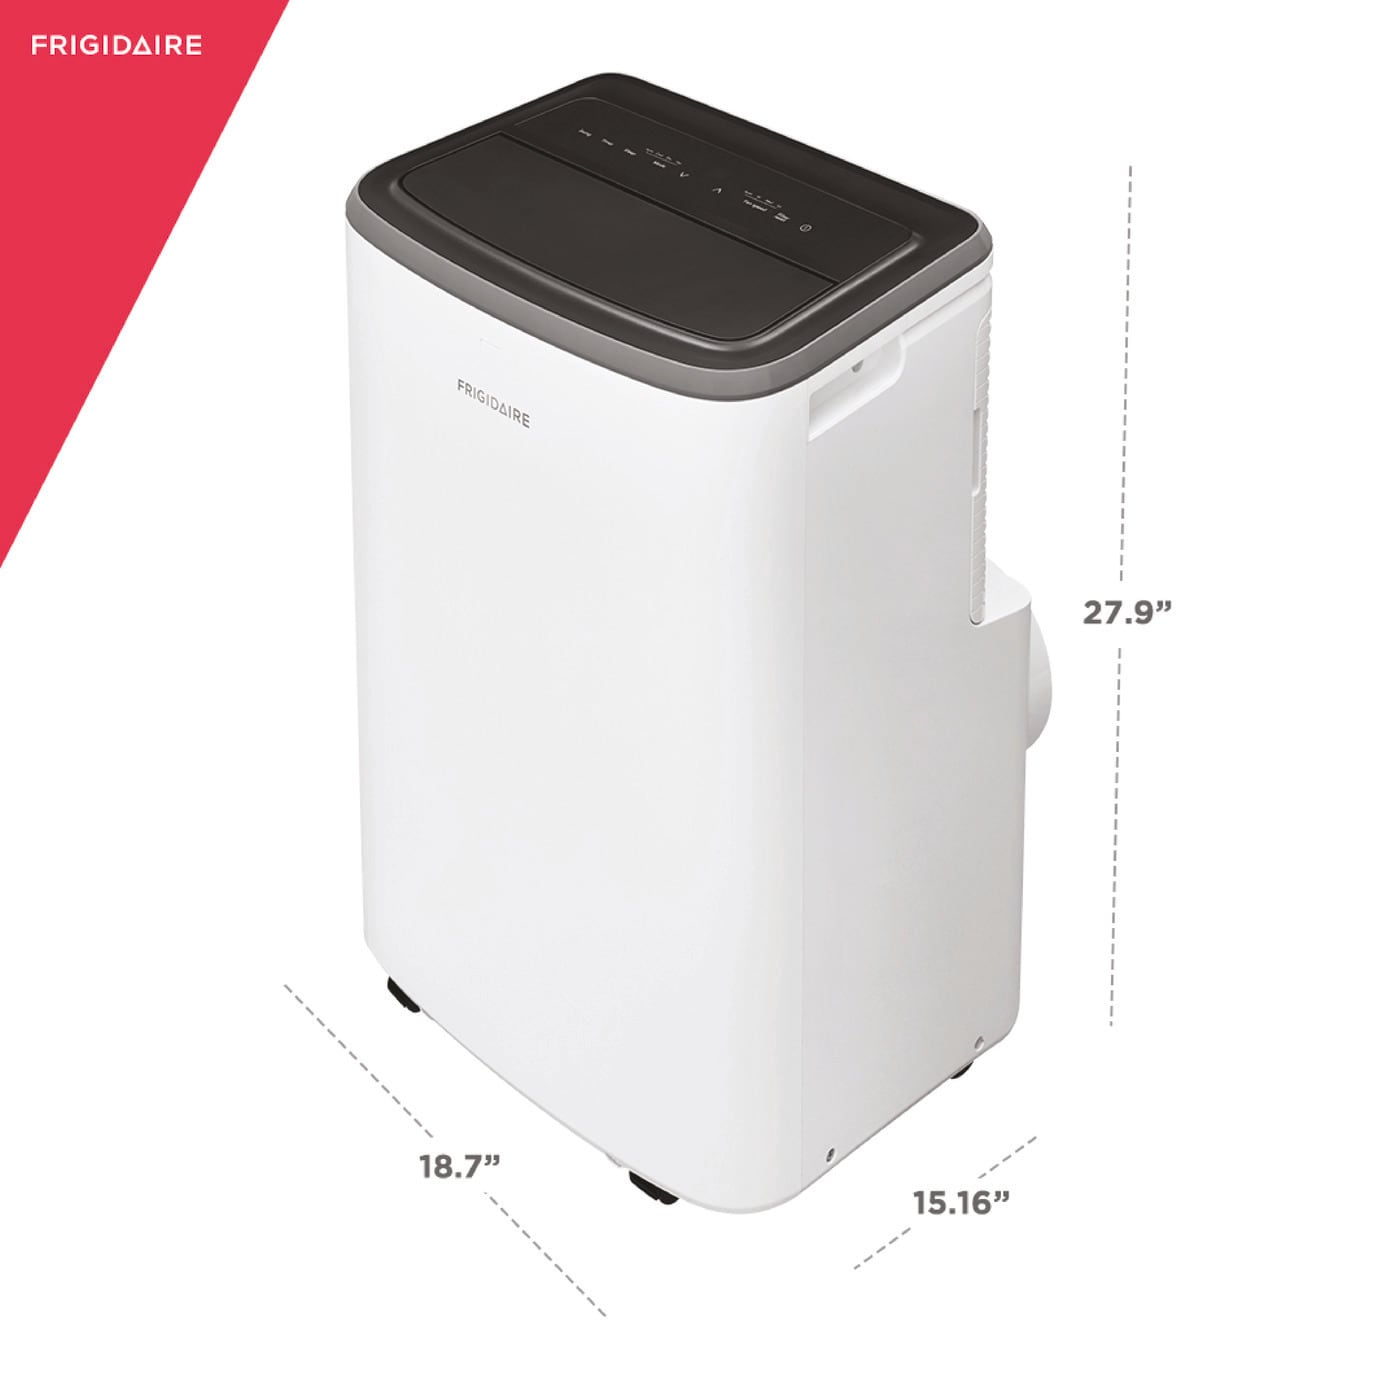 13,000 BTU Portable Room Air Conditioner with Dehumidifier Mode White FHPC132AB1